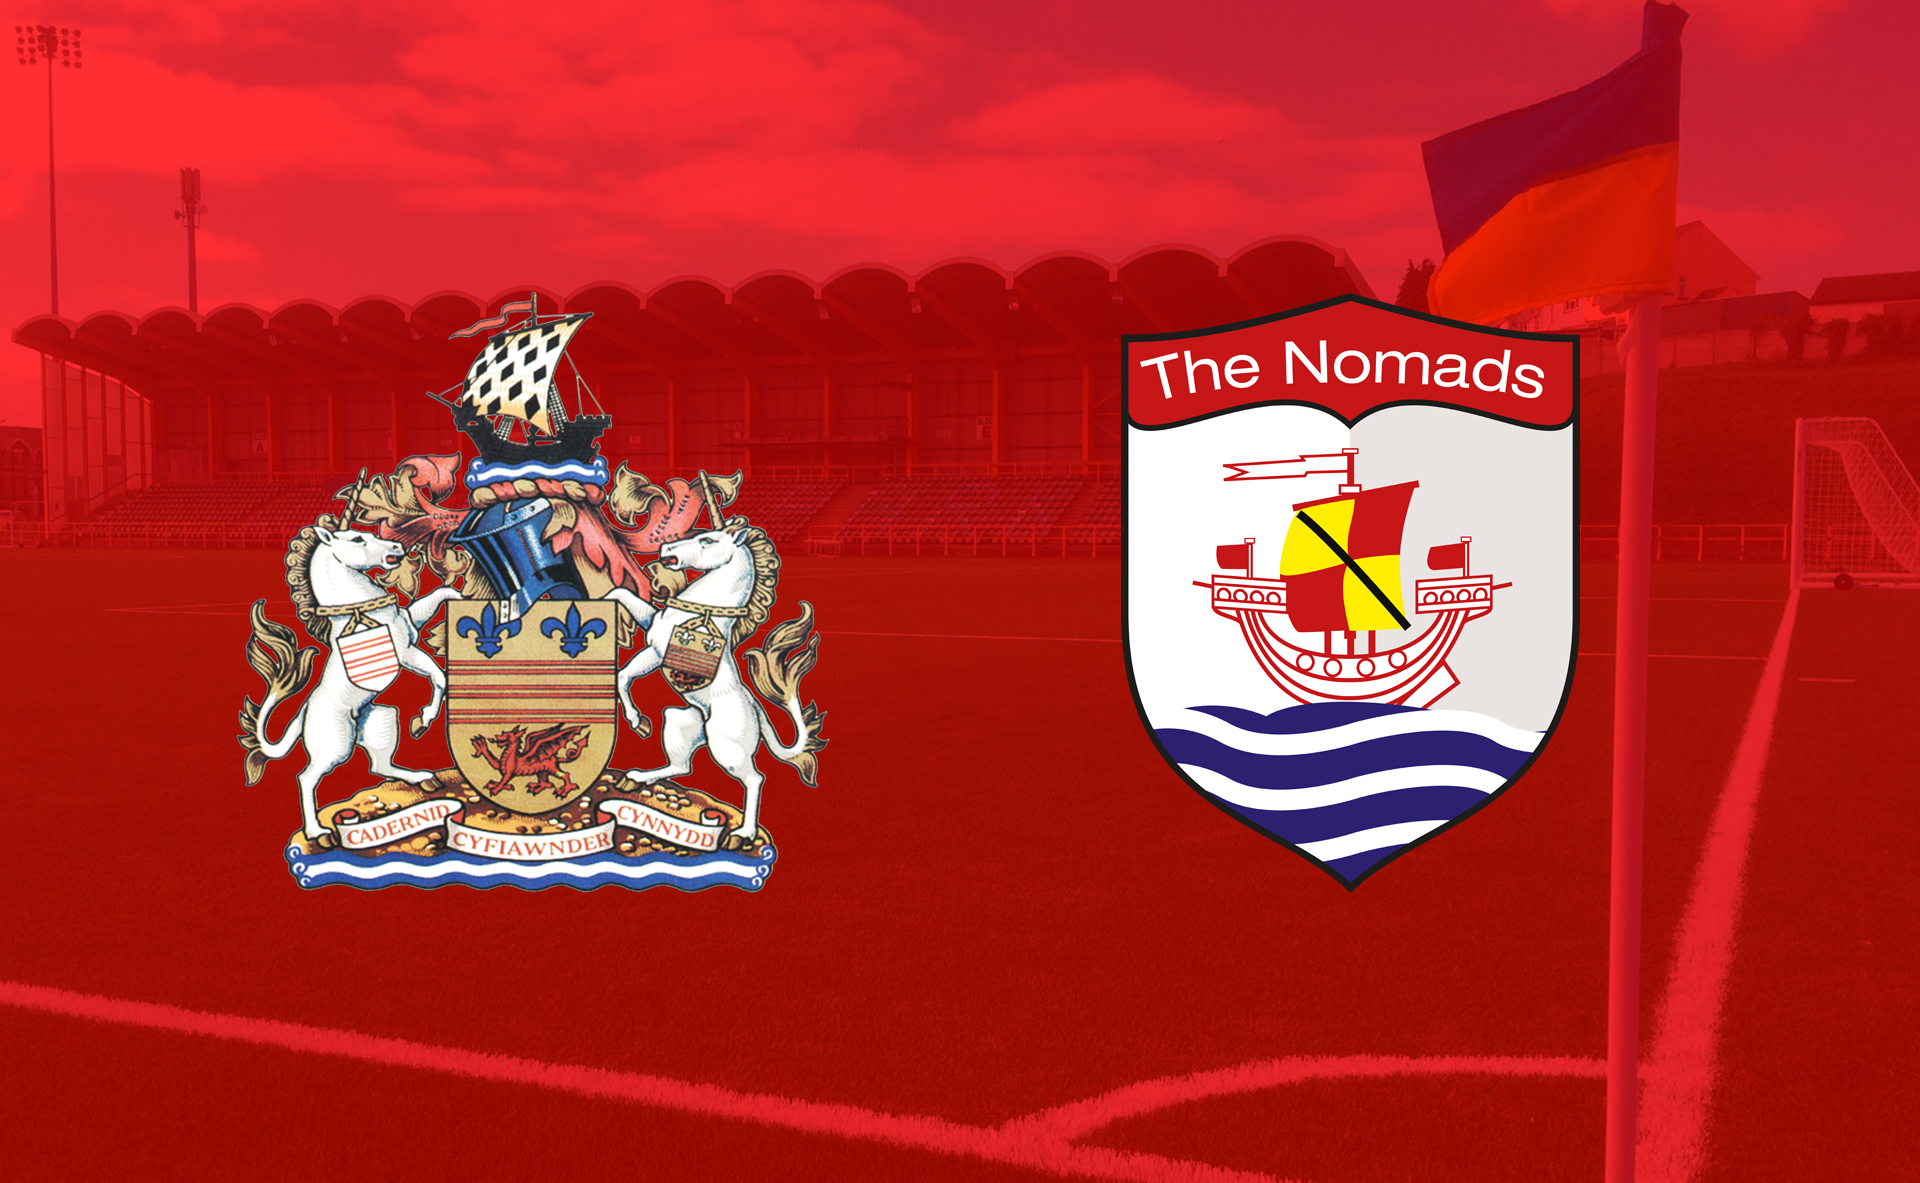 Barry Town United vs Connah's Quay Nomads will now take place on Saturday 9th November